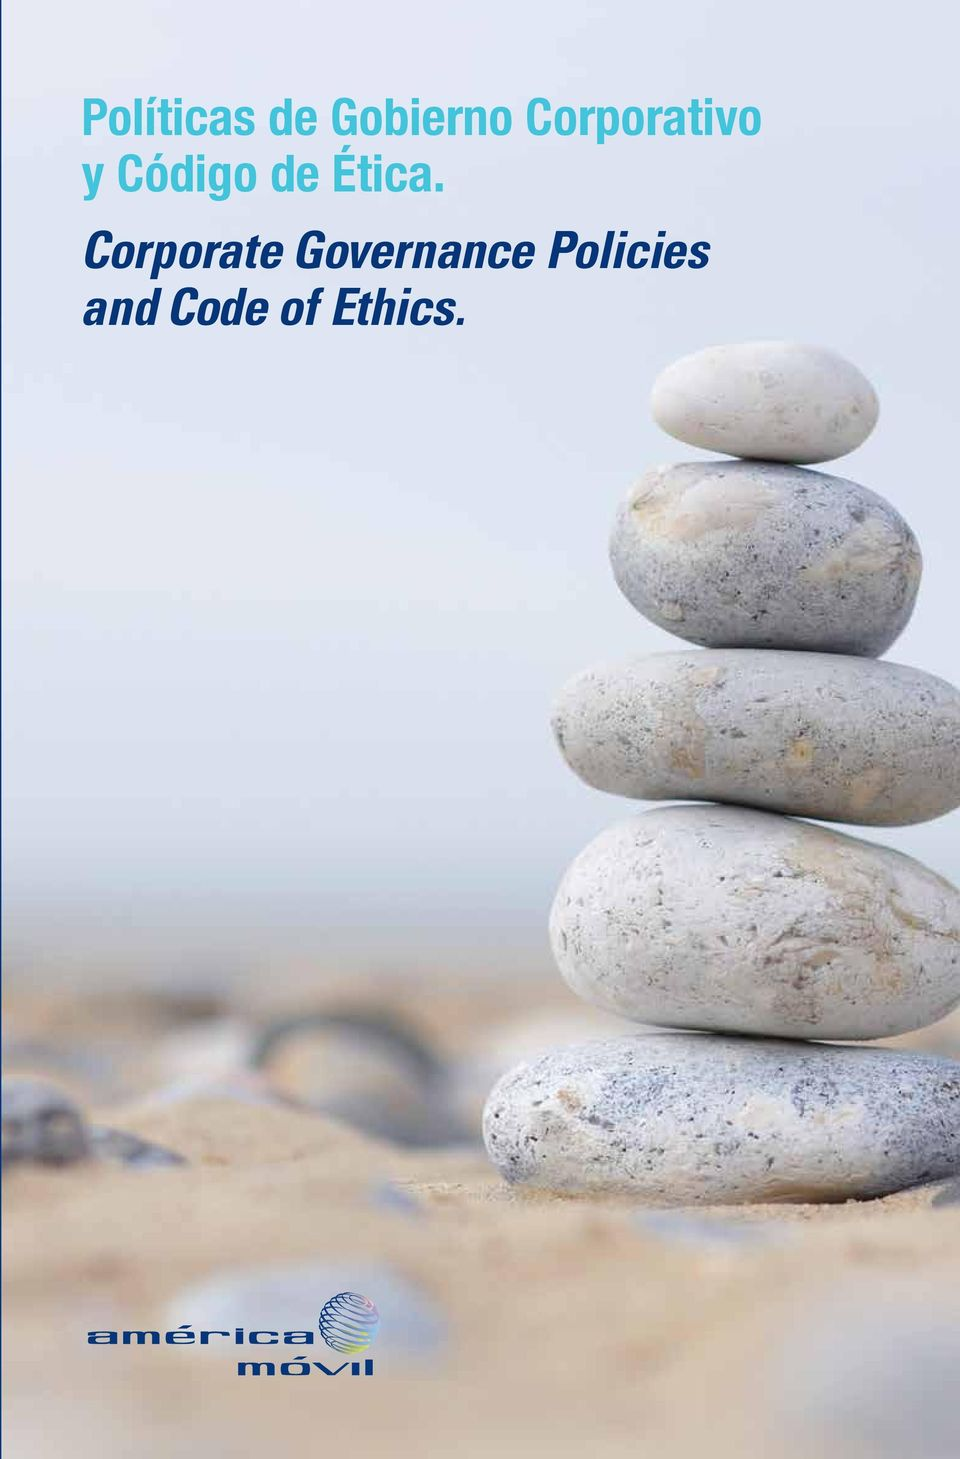 Corporate Governance Policies and Code of